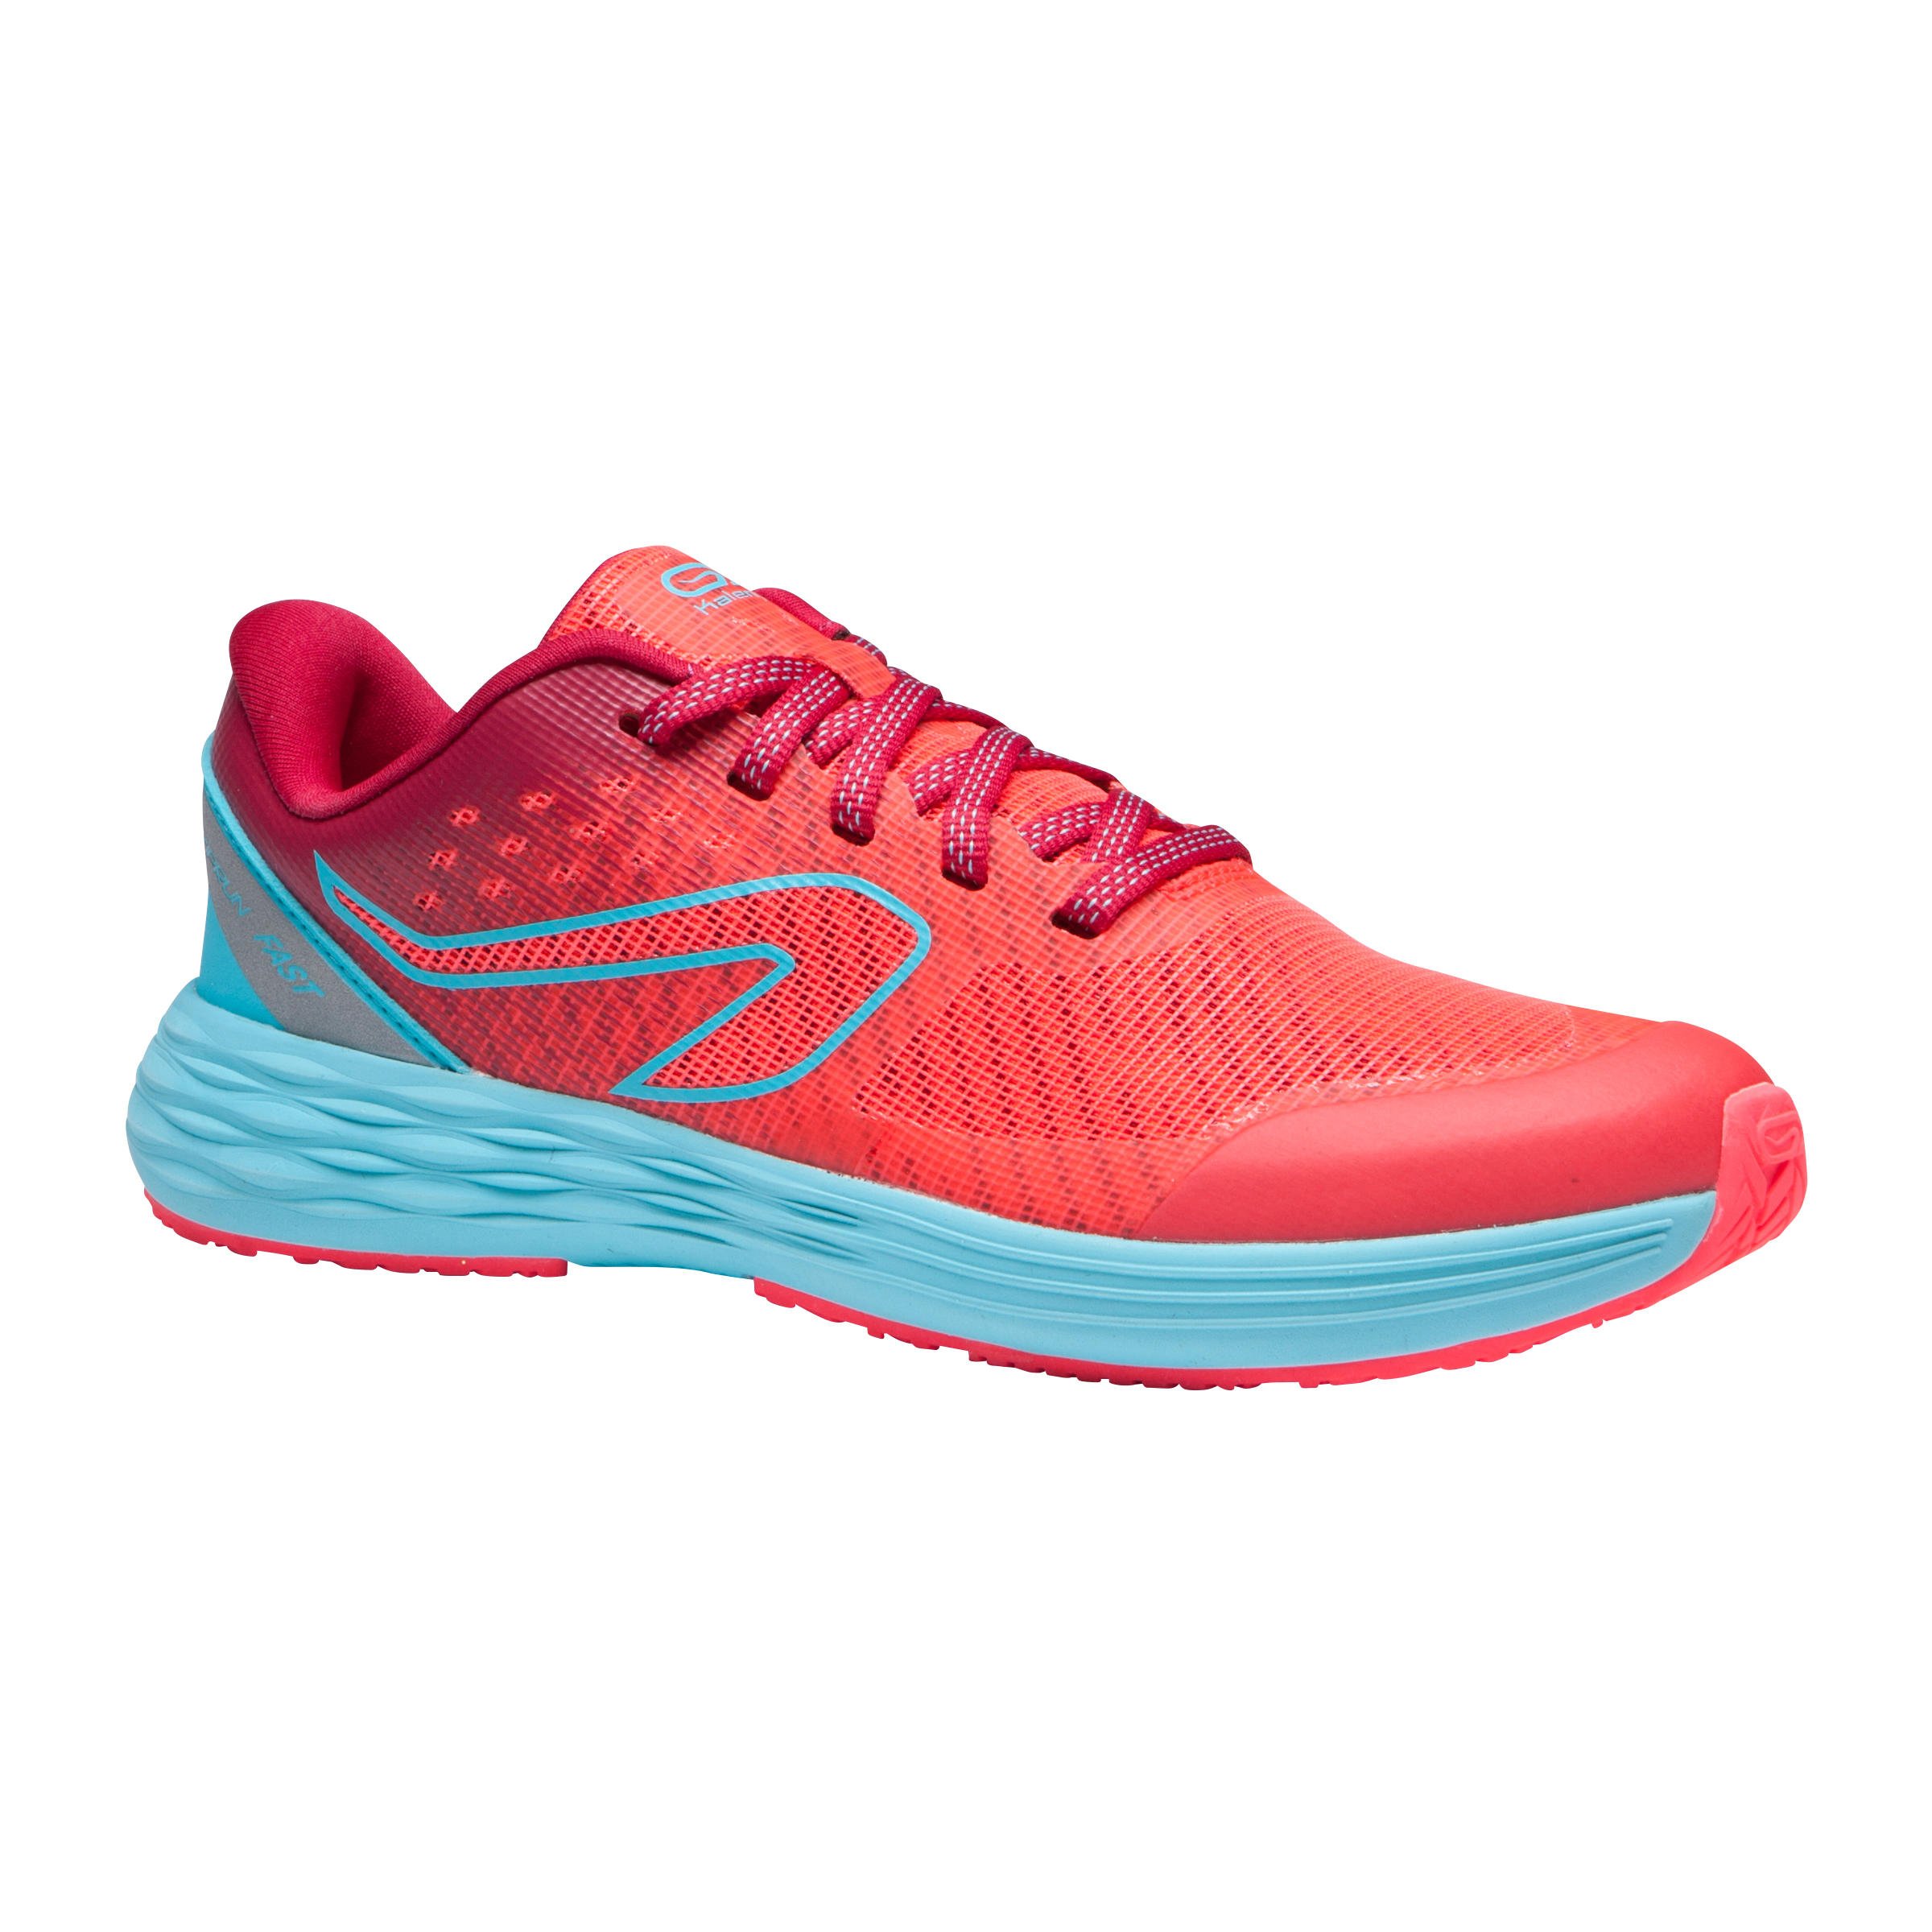 Kiprun Children's Track & Field Shoes - Pink/Turquoise